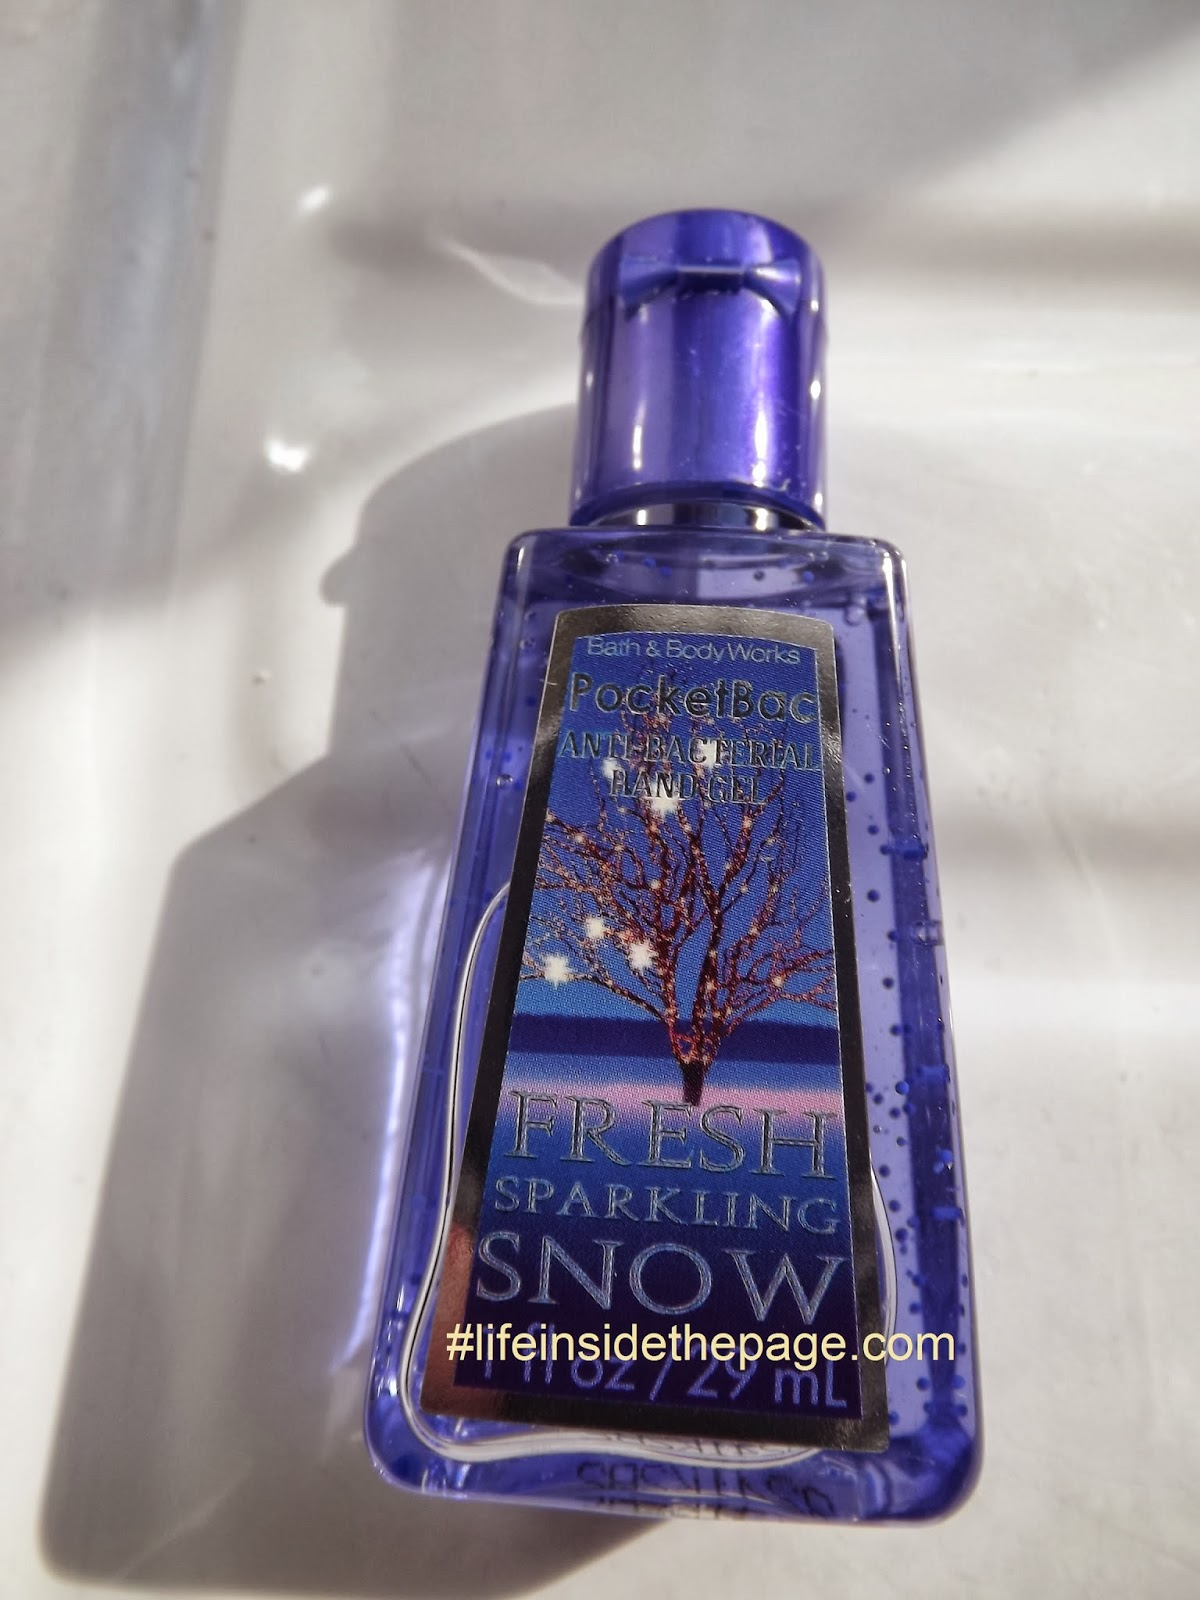 Bath and body works some testing pocket bacs holiday 2013 life